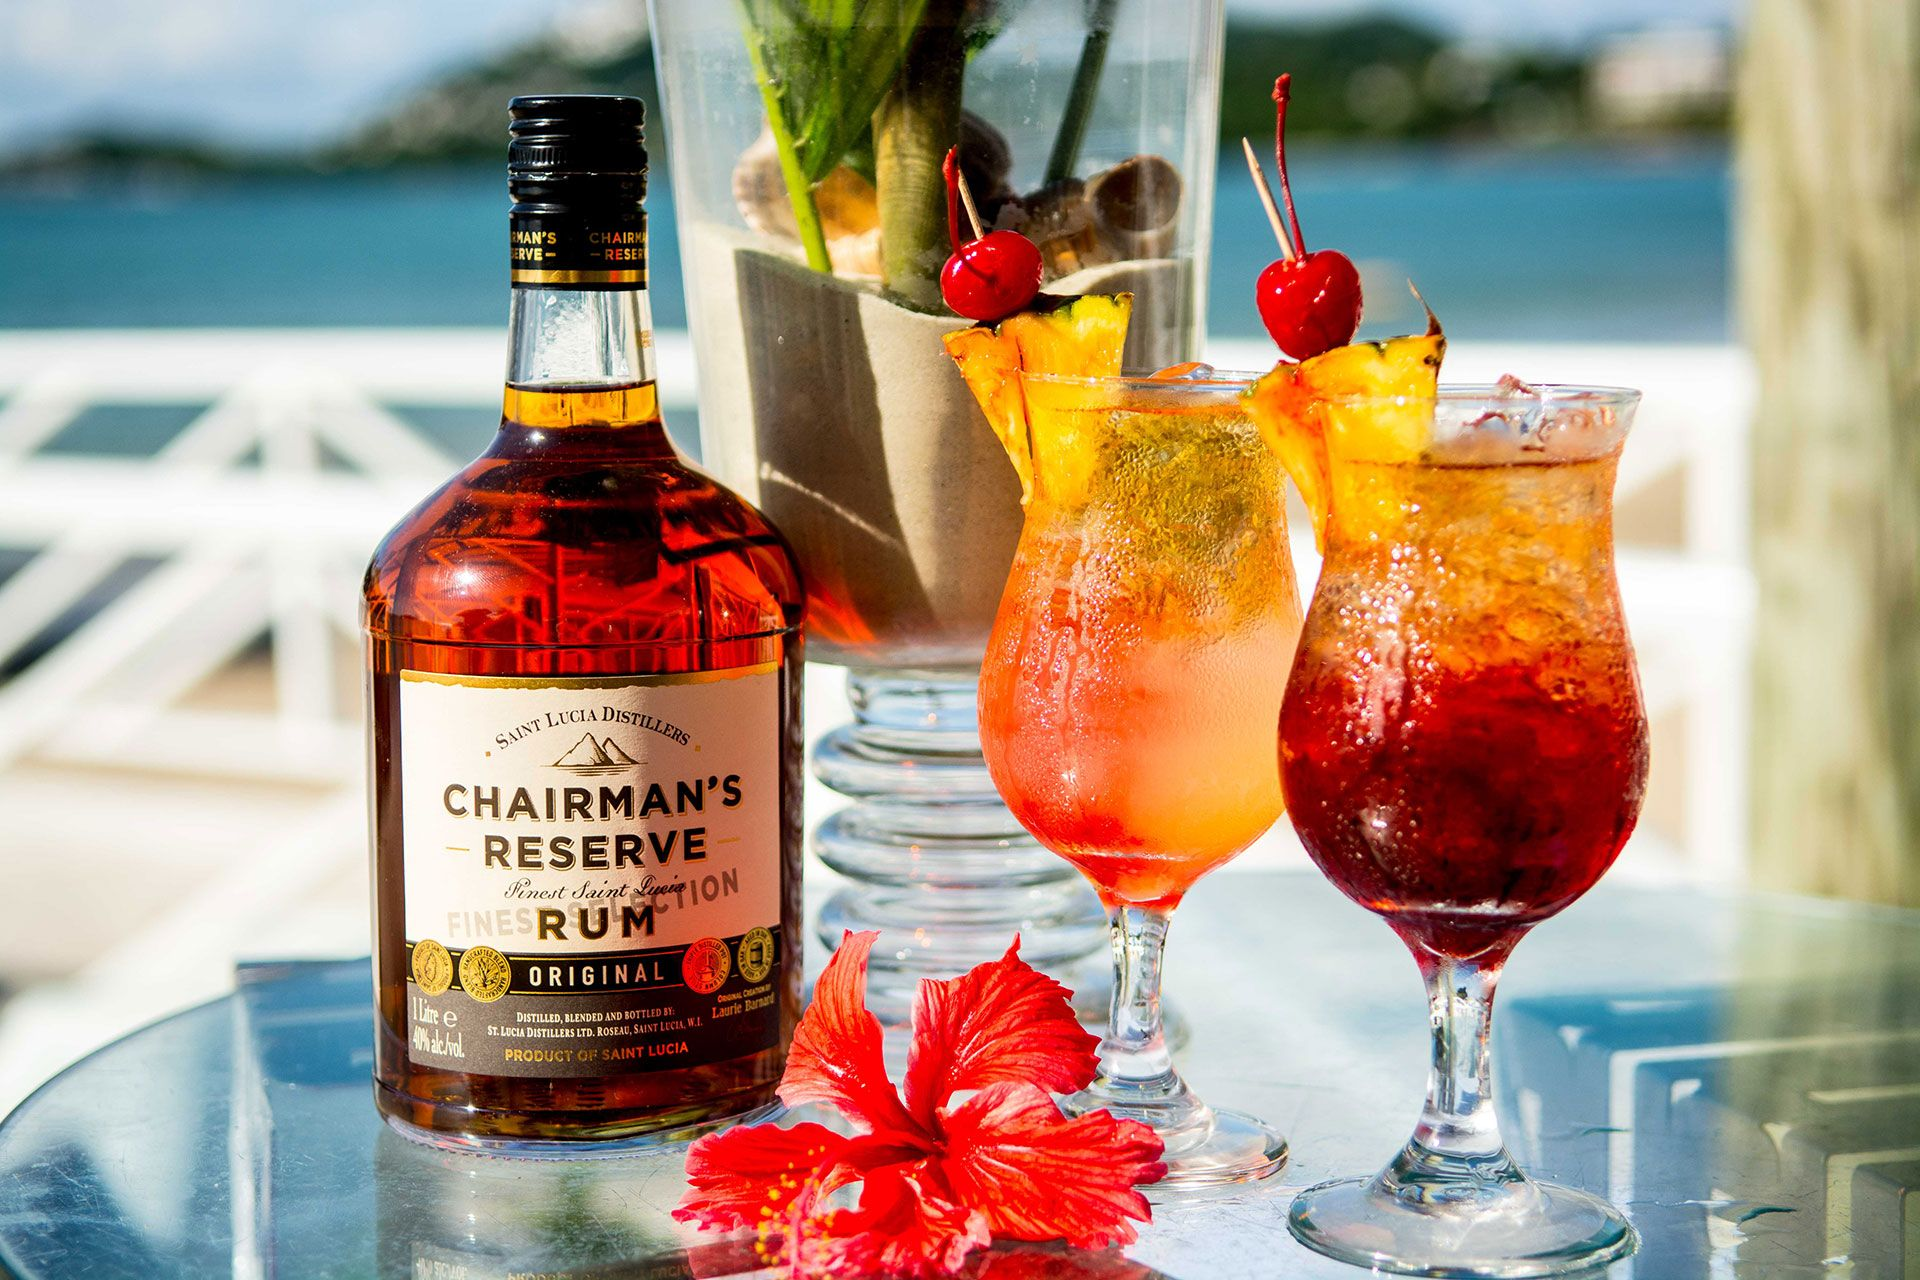 Chairman's Reserve rum at Sandals Halcyon Beach